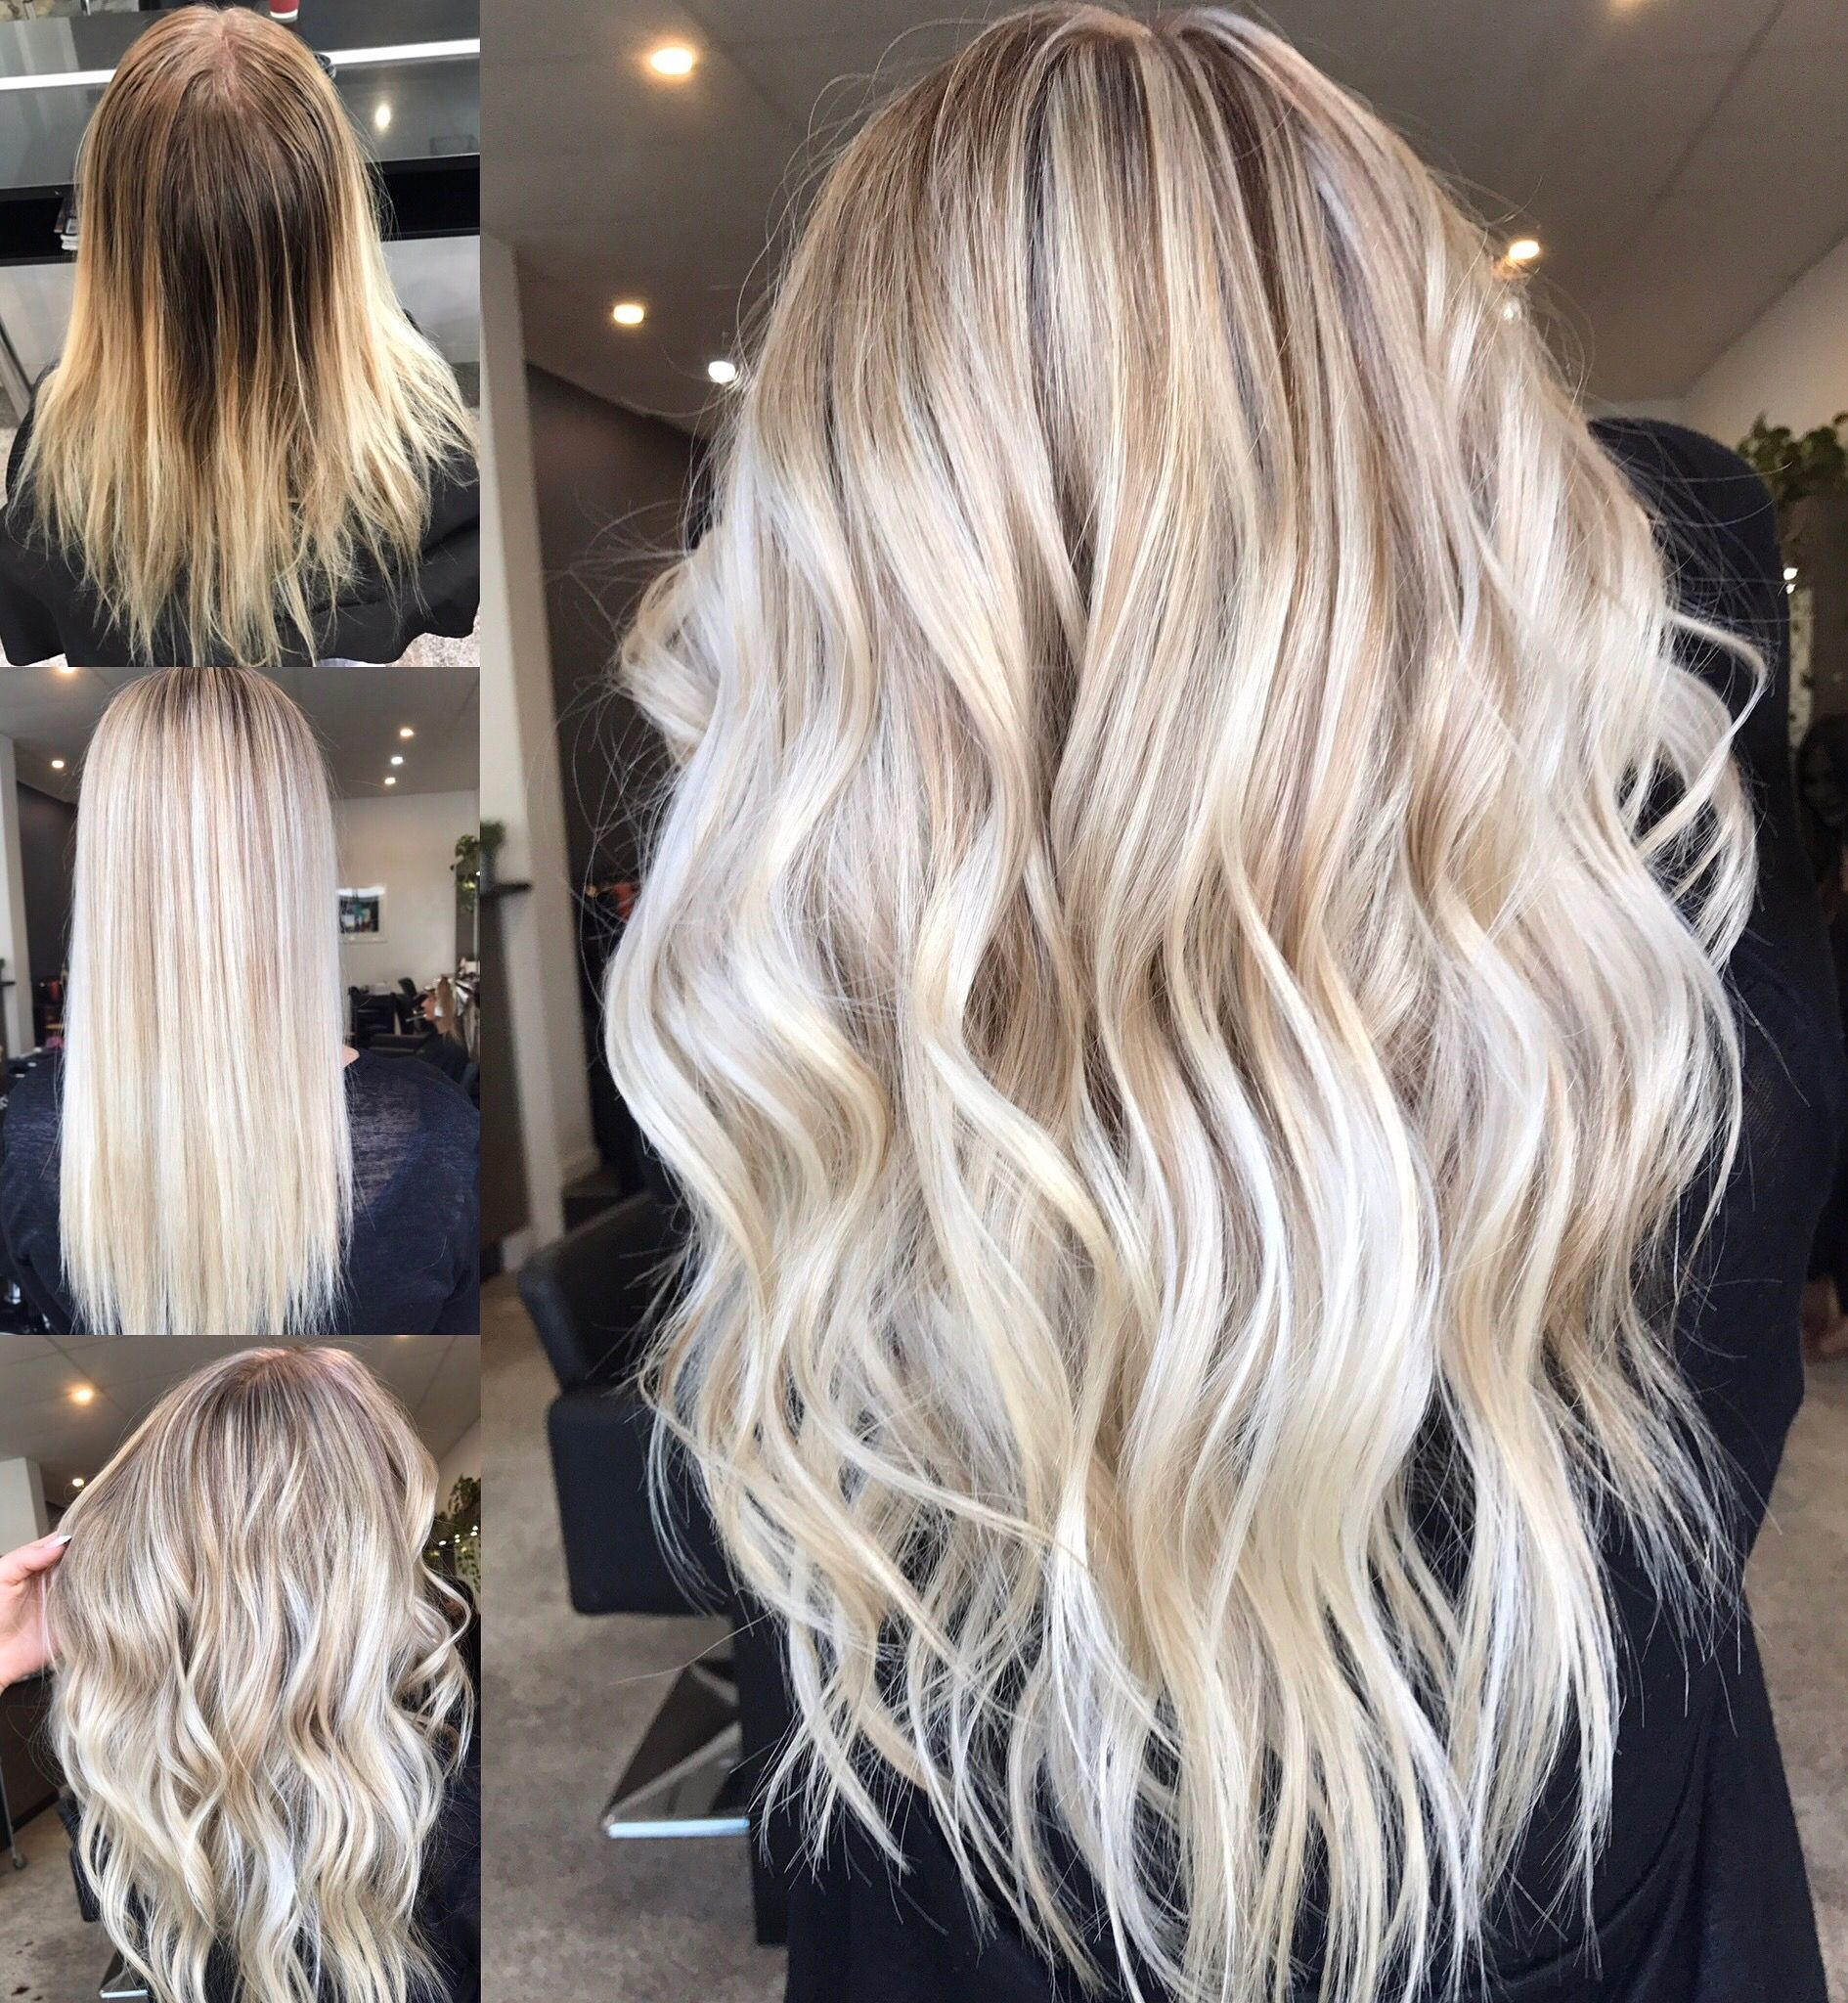 hair inspiration instagram hairbykaitlinjade blonde balayage long hair cool girl hair. Black Bedroom Furniture Sets. Home Design Ideas